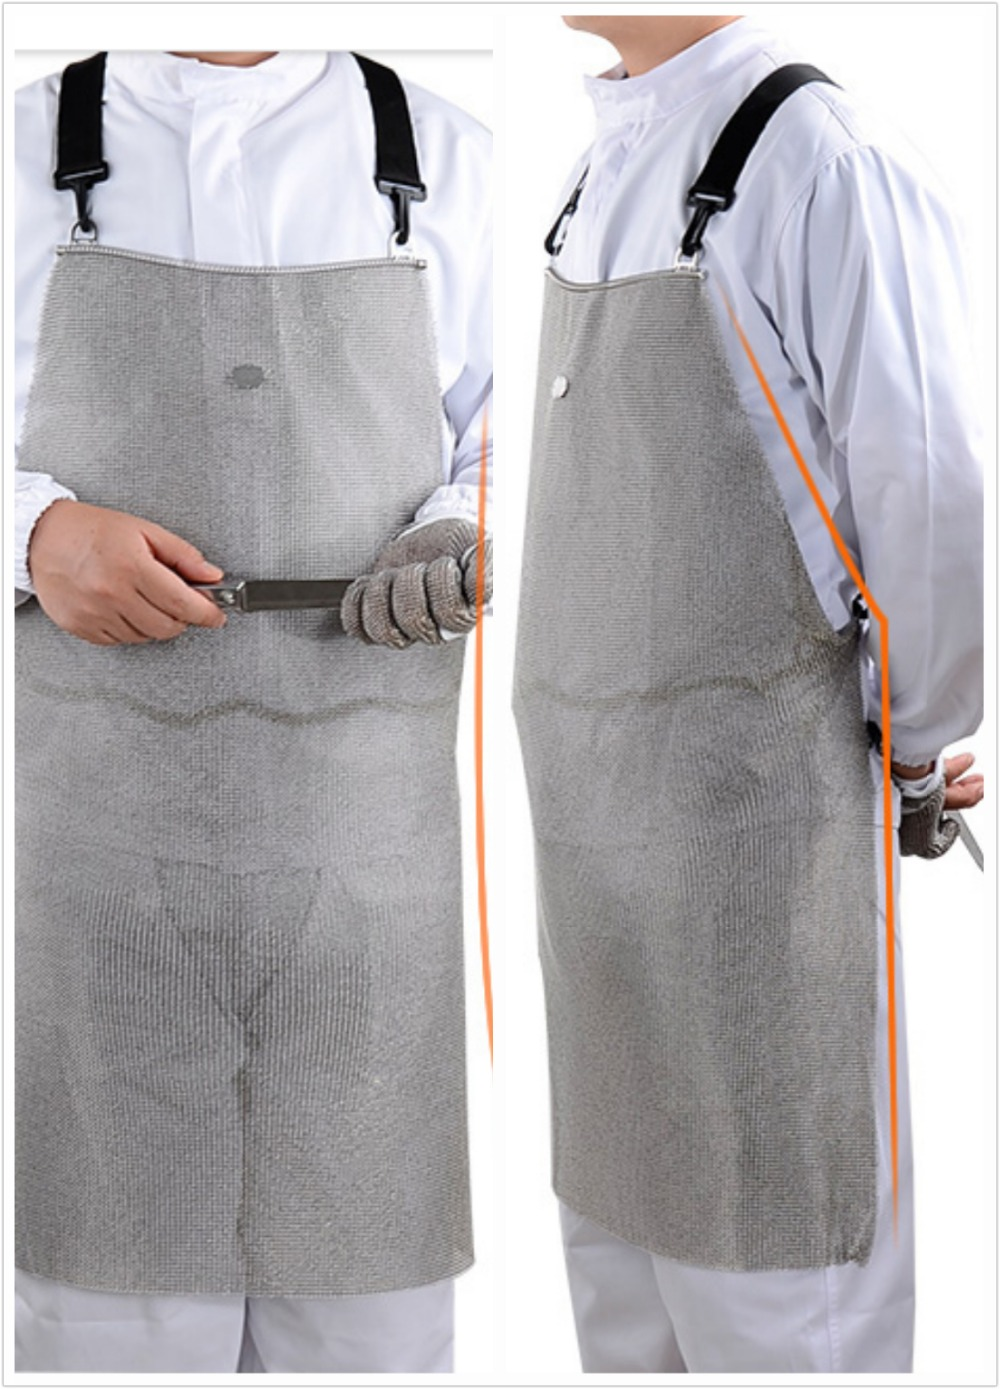 316L cut resistant knife proof protect stomach stainless steel chain mail butcher apron butcher